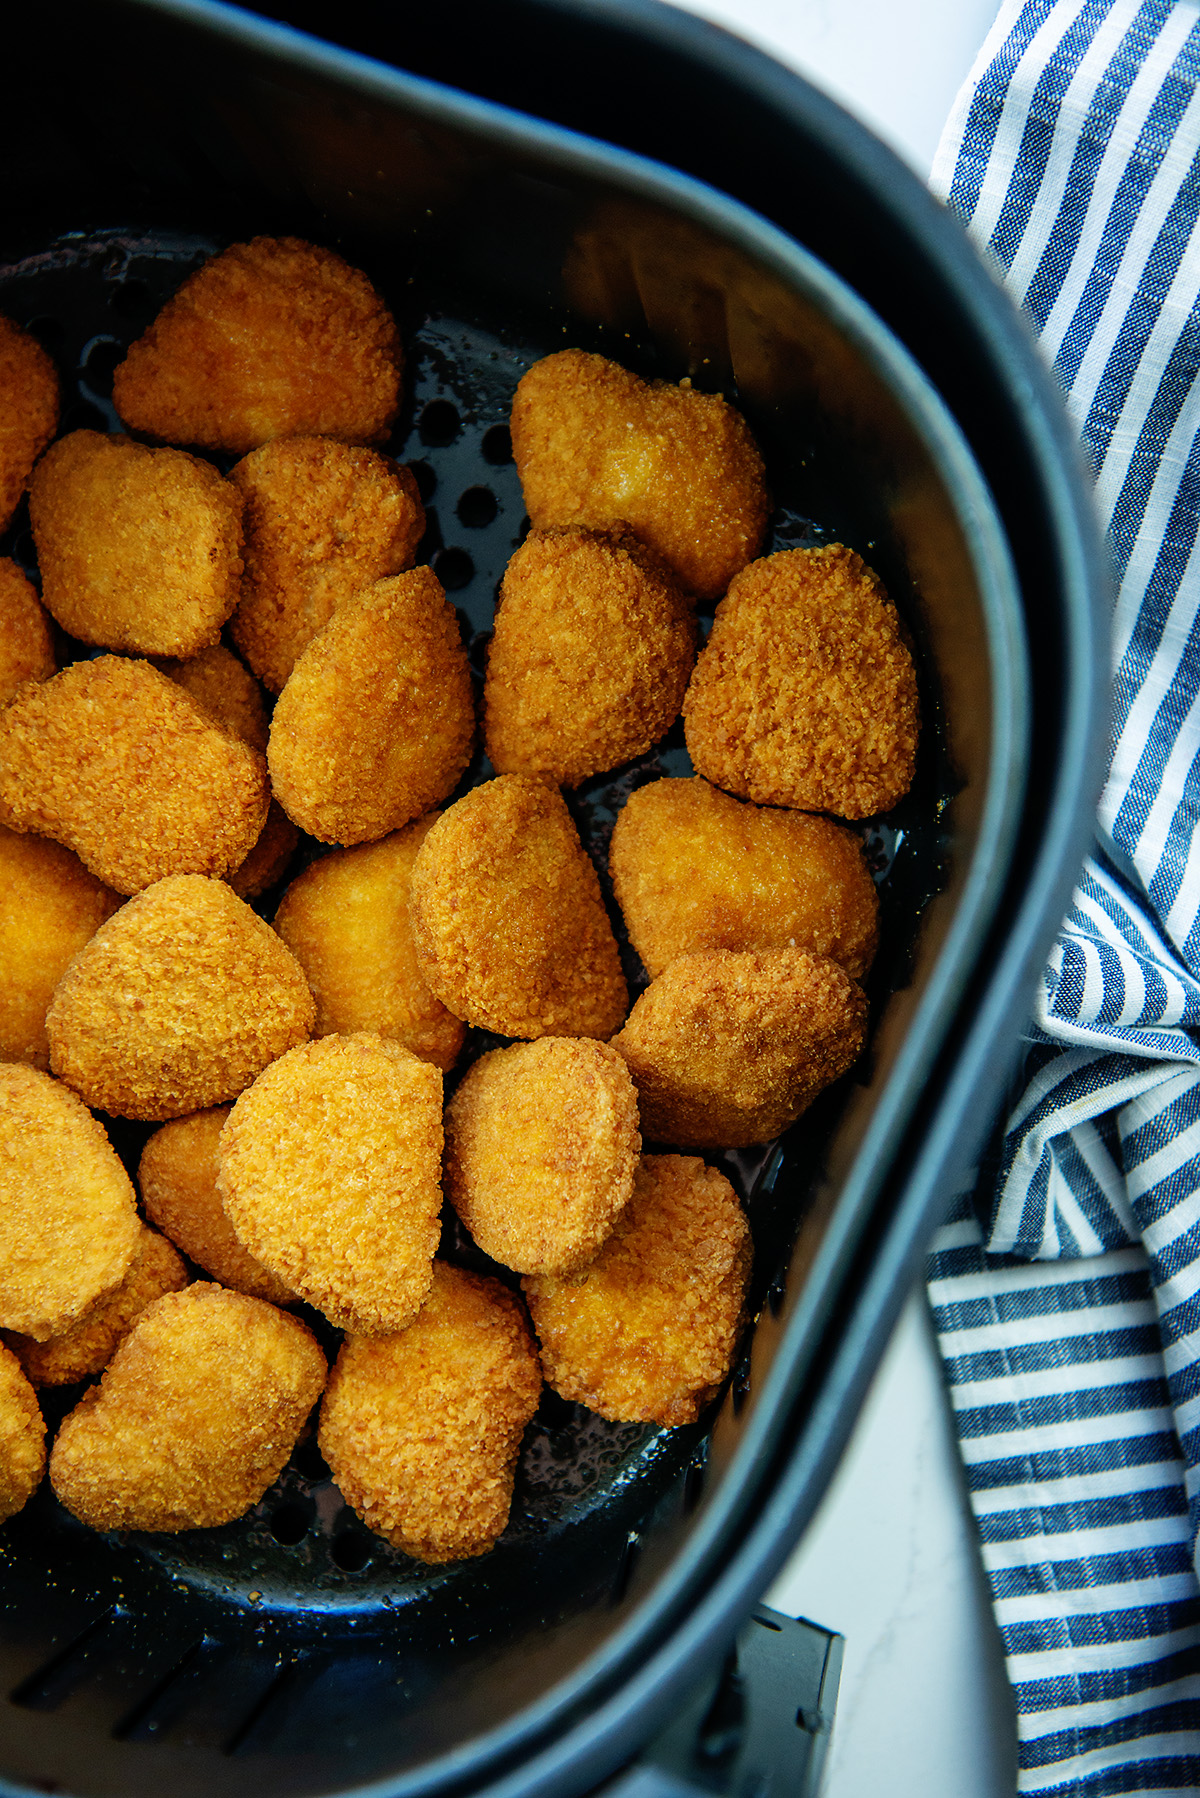 cooked chicken nuggets in an air fryer basket